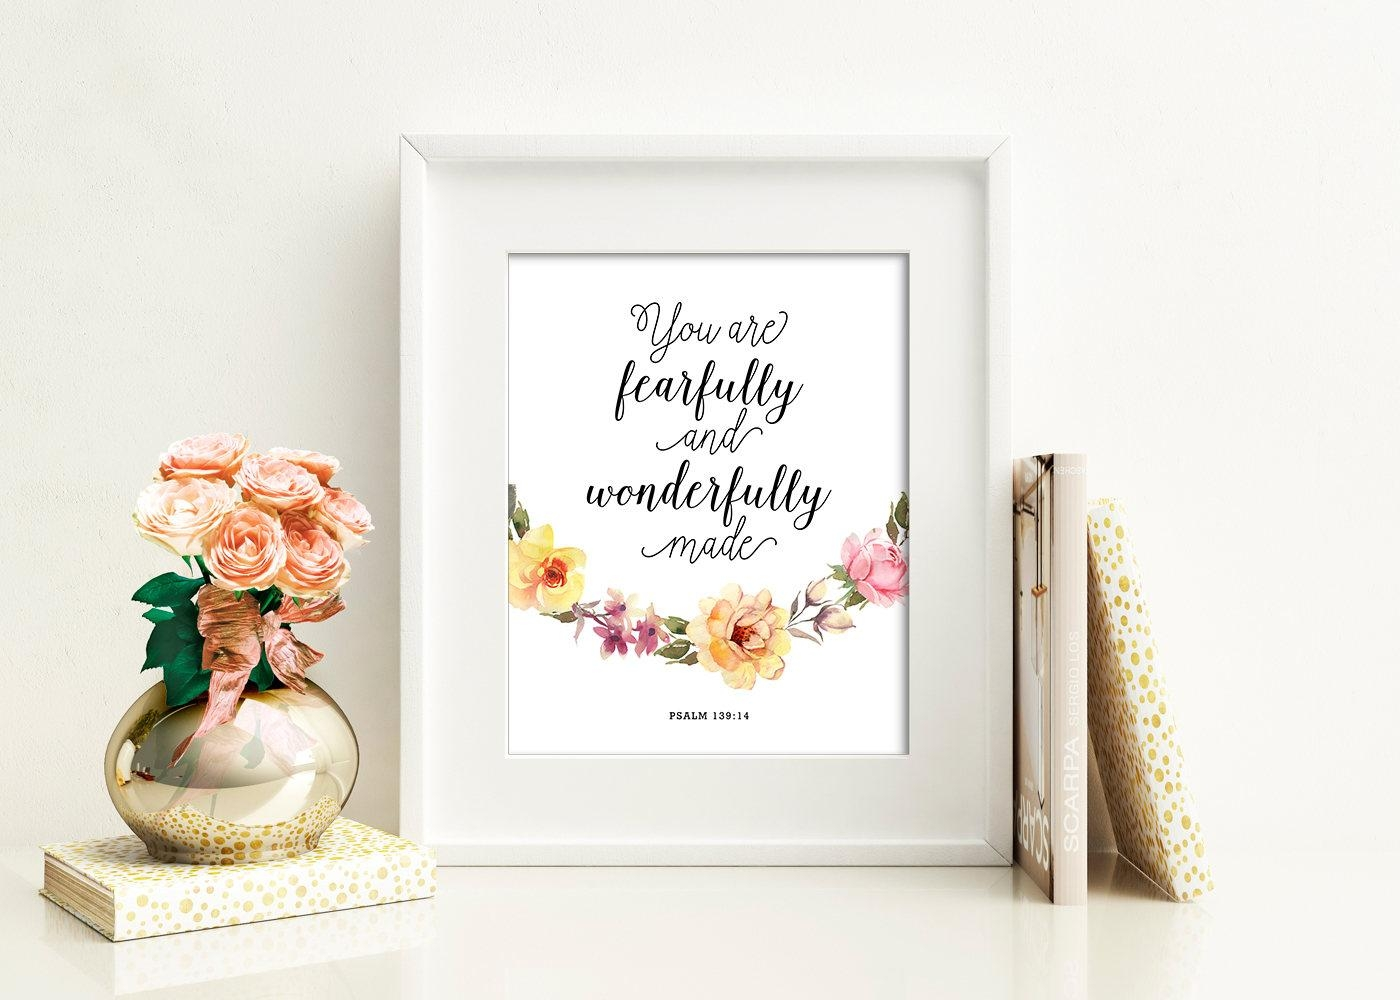 You Are Fearfully And Wonderfully Made Nursery Decor Printable Intended For Fearfully And Wonderfully Made Wall Art (View 14 of 20)